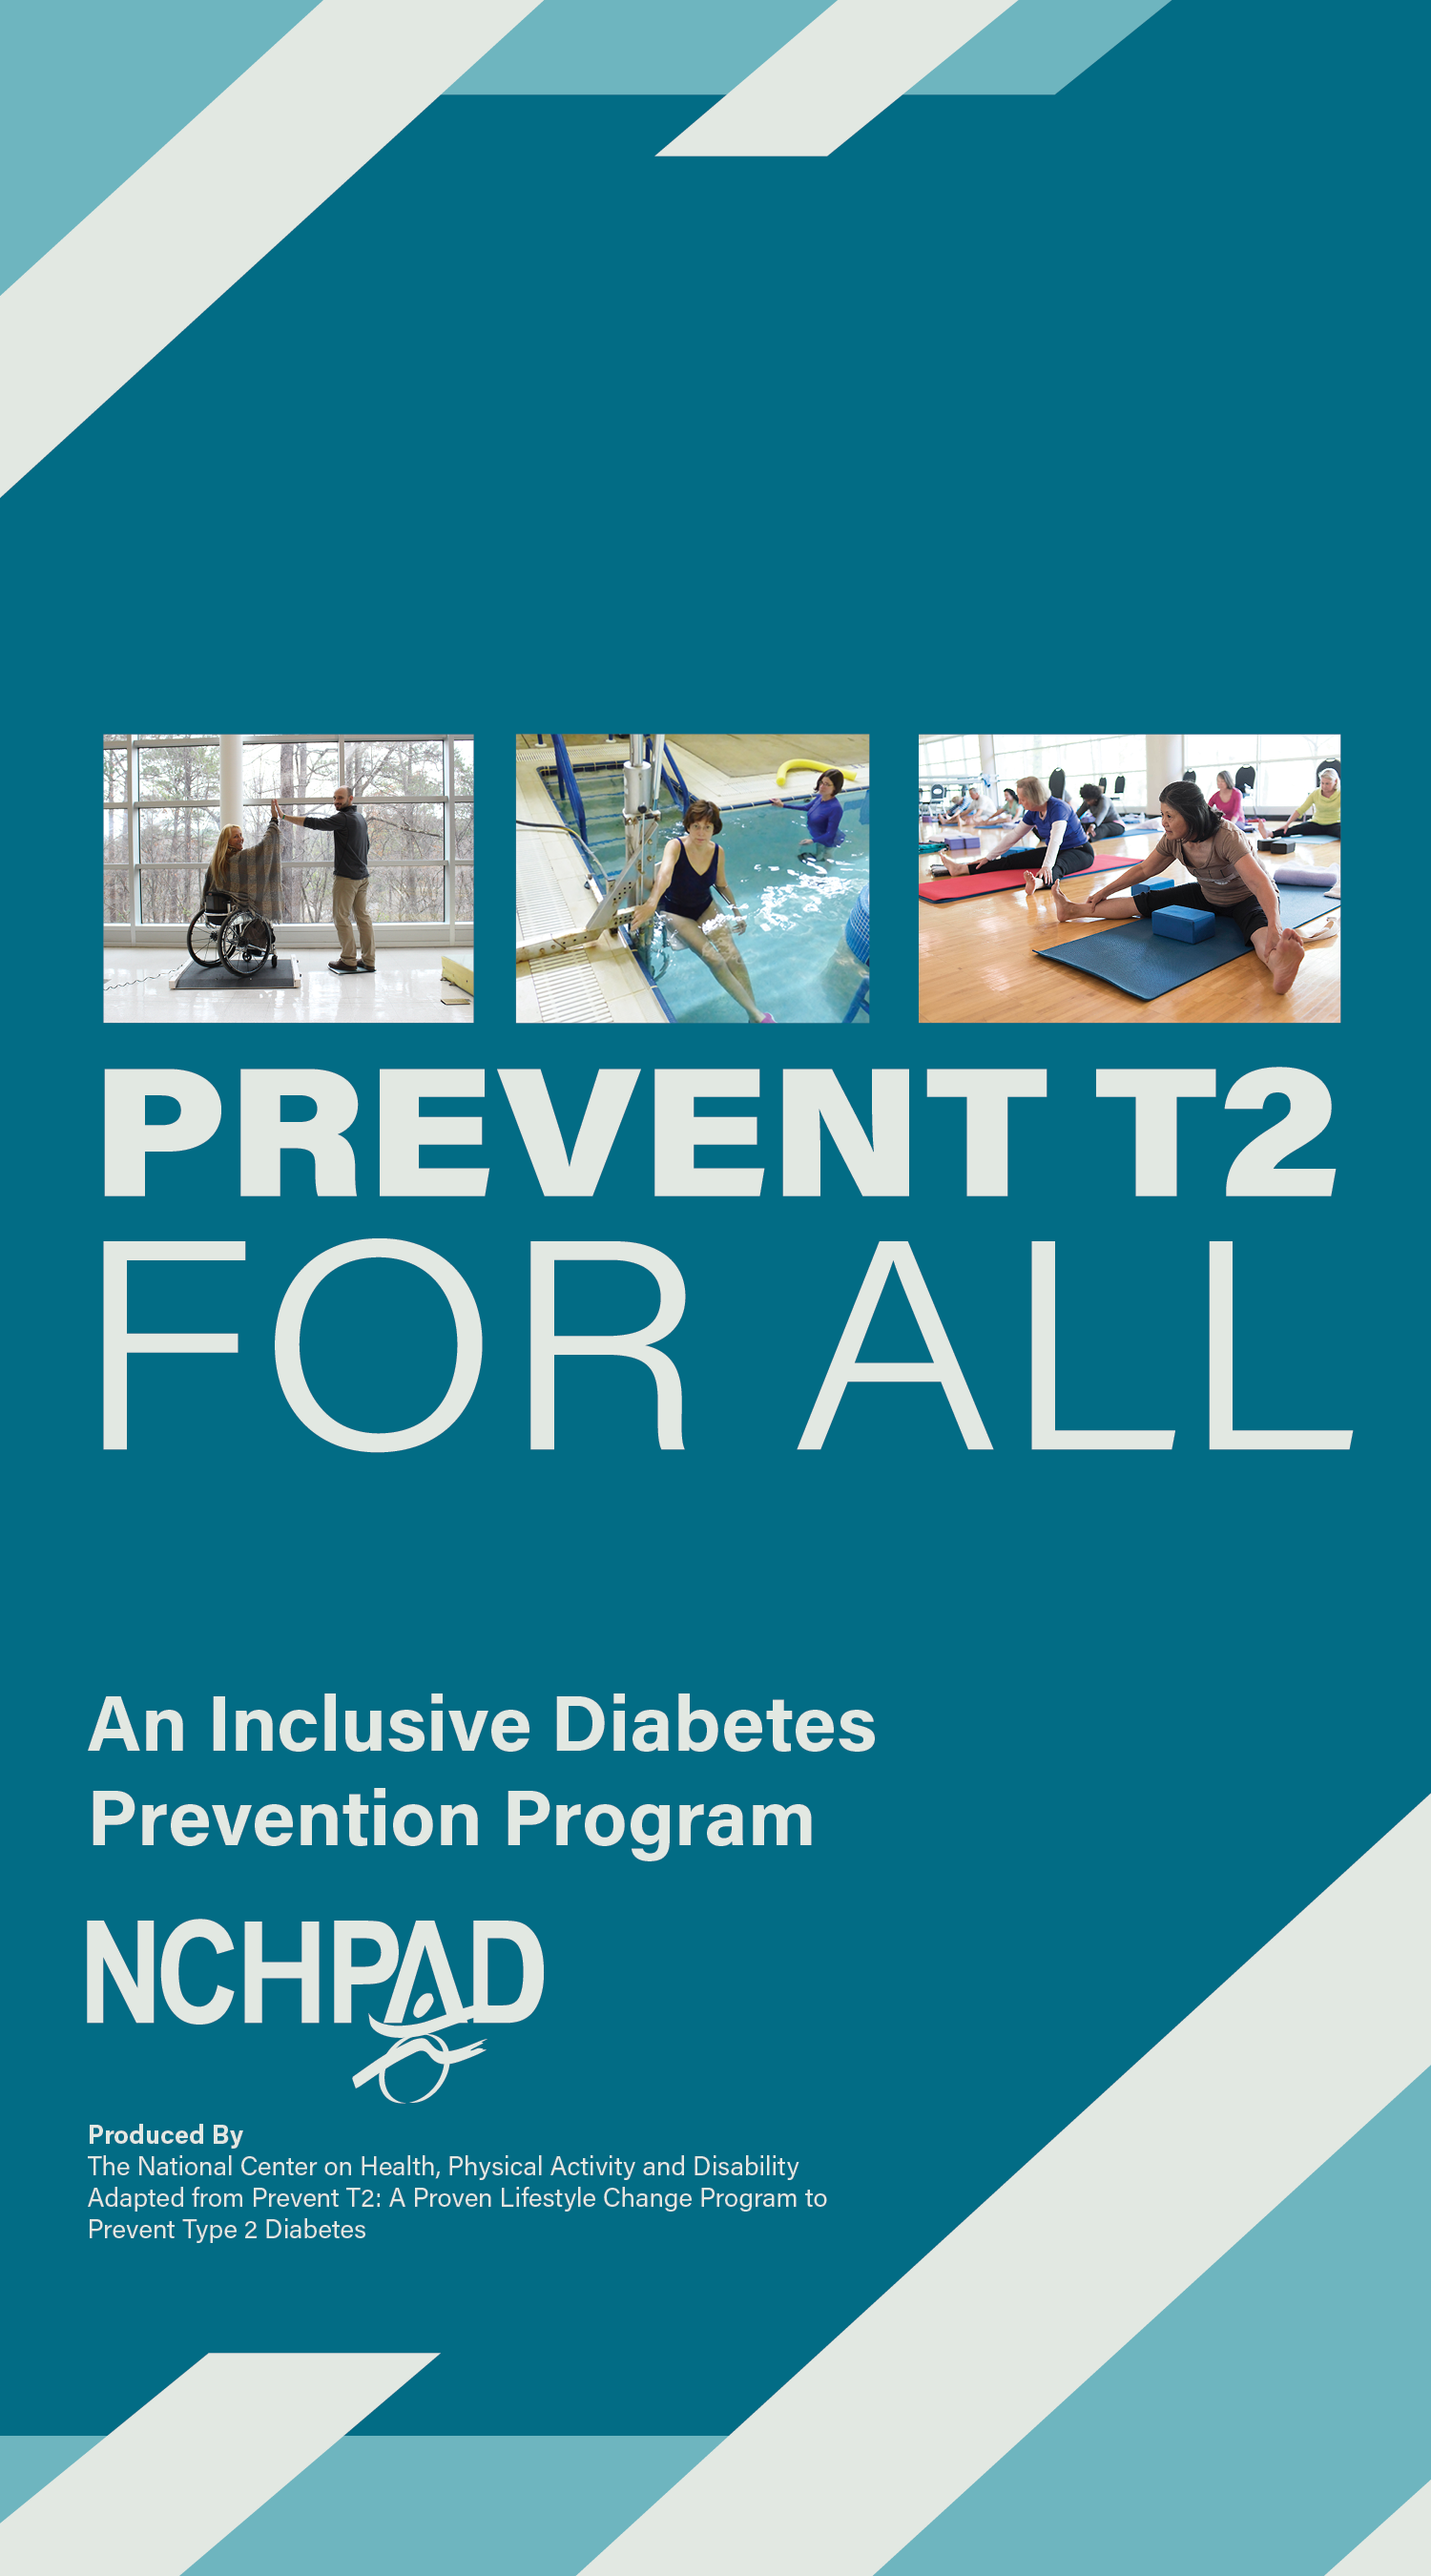 Graphicly designed image that states Prevent T2 for All. An Inclusive Diabetes prevention progream